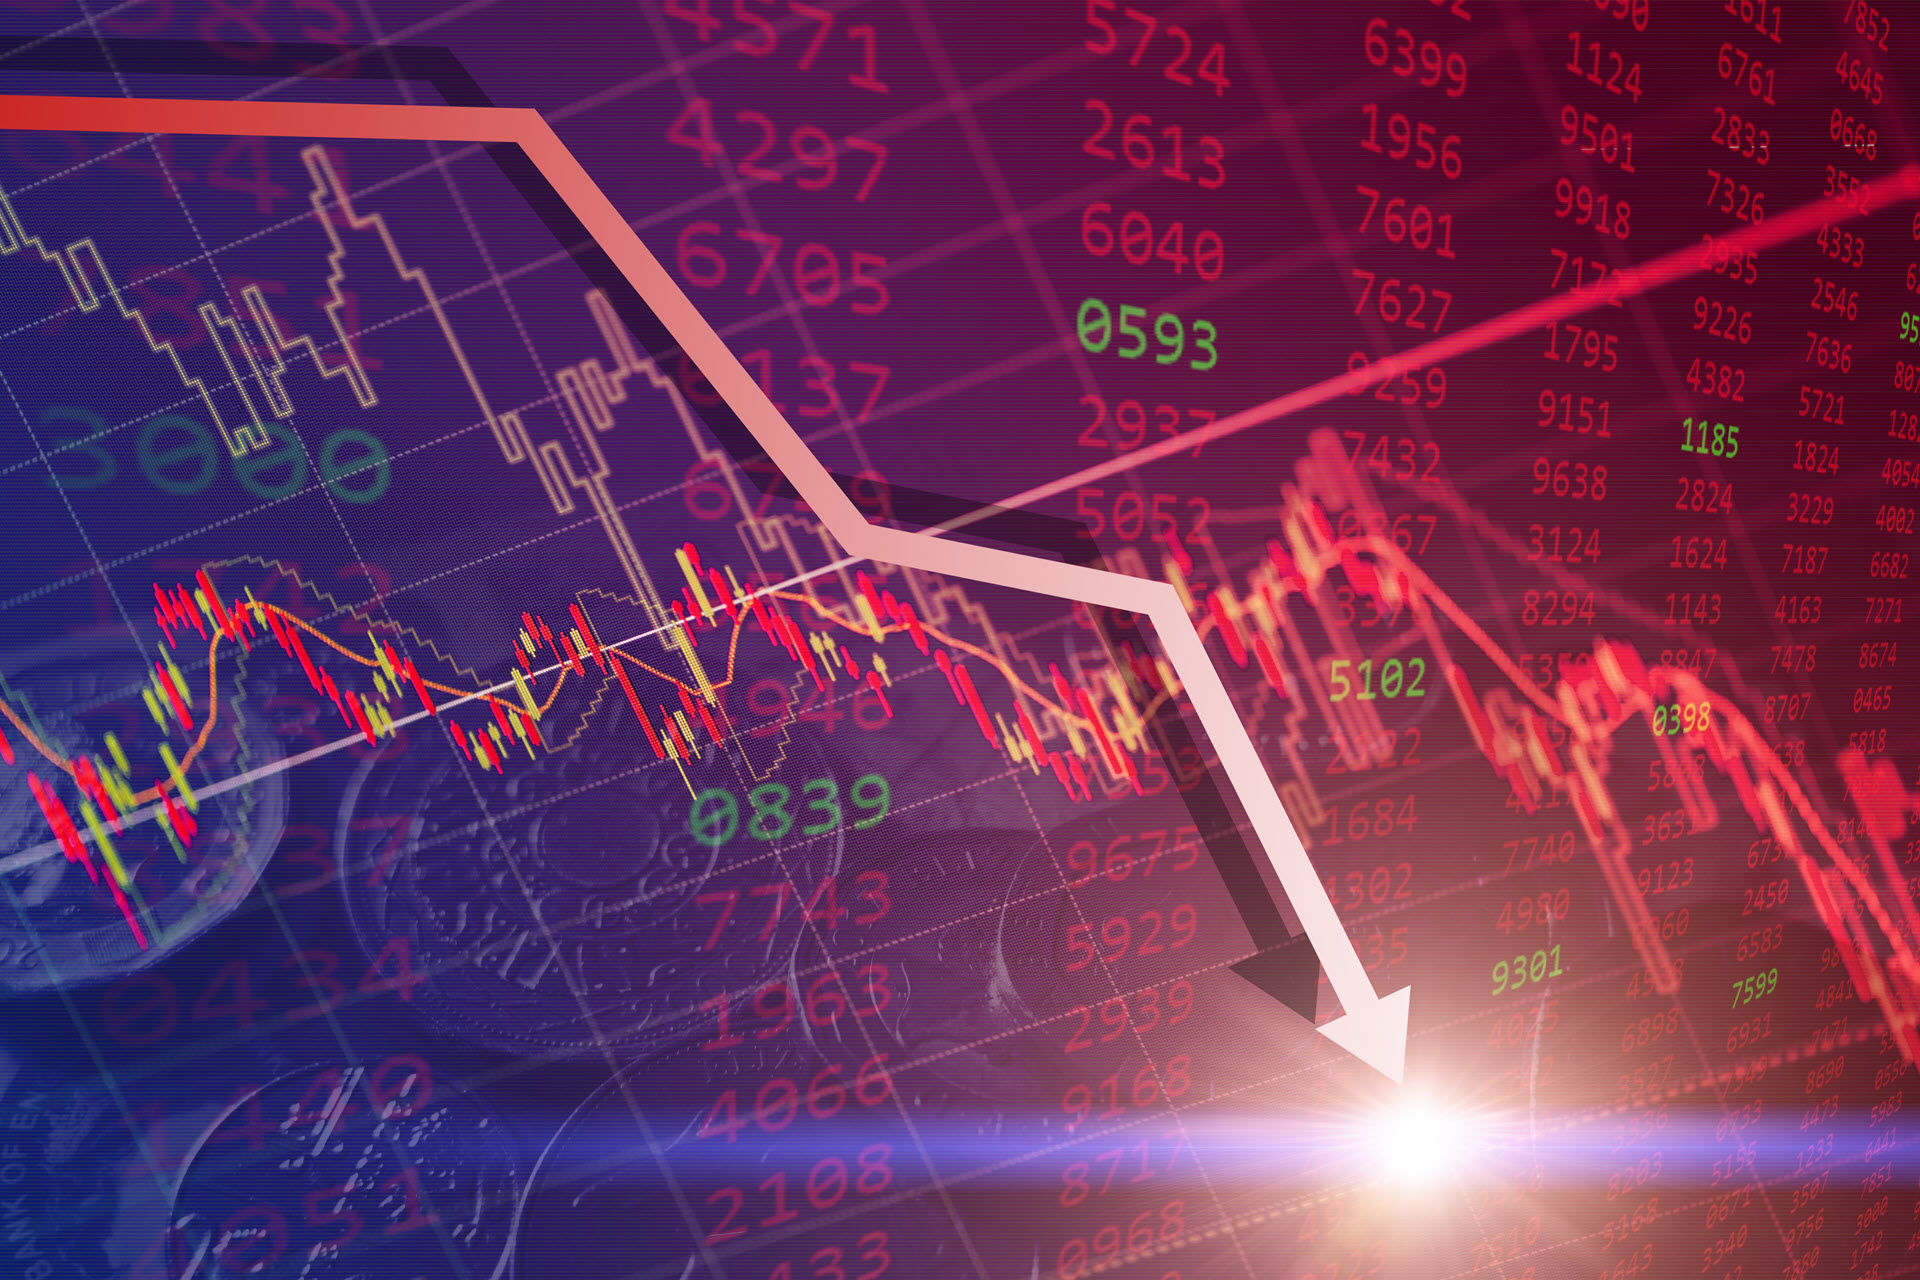 Stocks Keep Sliding as the Technology Rout Continues - Market Insights